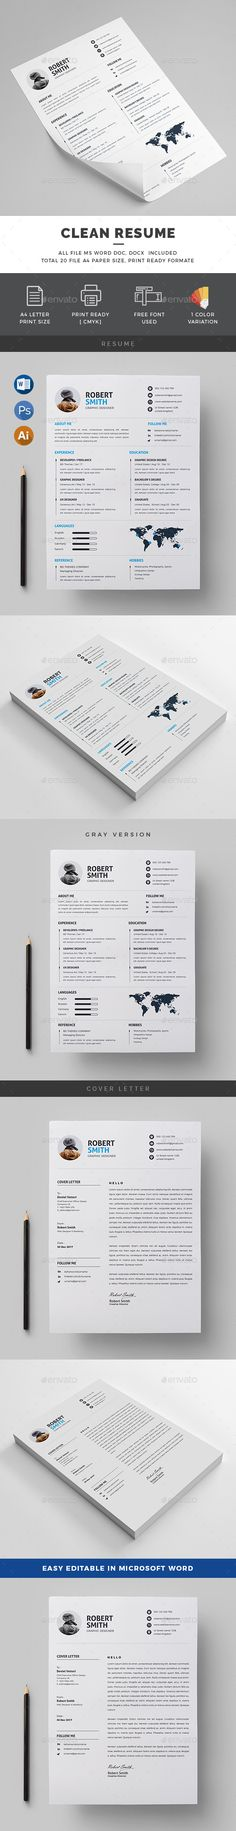 Professional Resume Template - Word \ Page Compatible - Best CV - free resume template downloads for mac